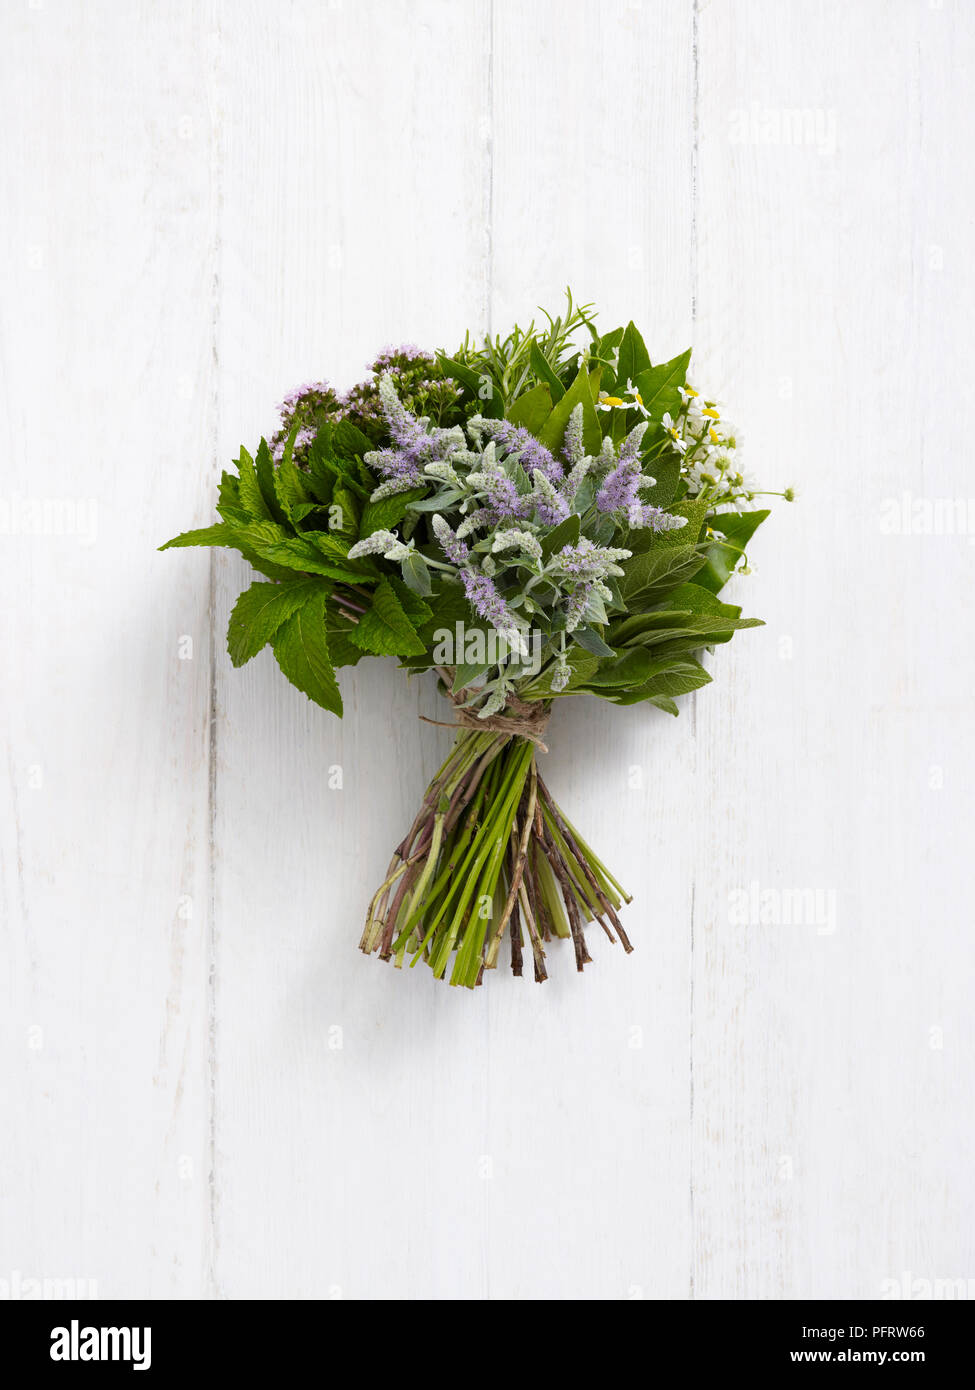 Herb posy (Herb nosegay), mint, flowering mint, sage, rosemary, marjoram, camomile, bay leaves - Stock Image